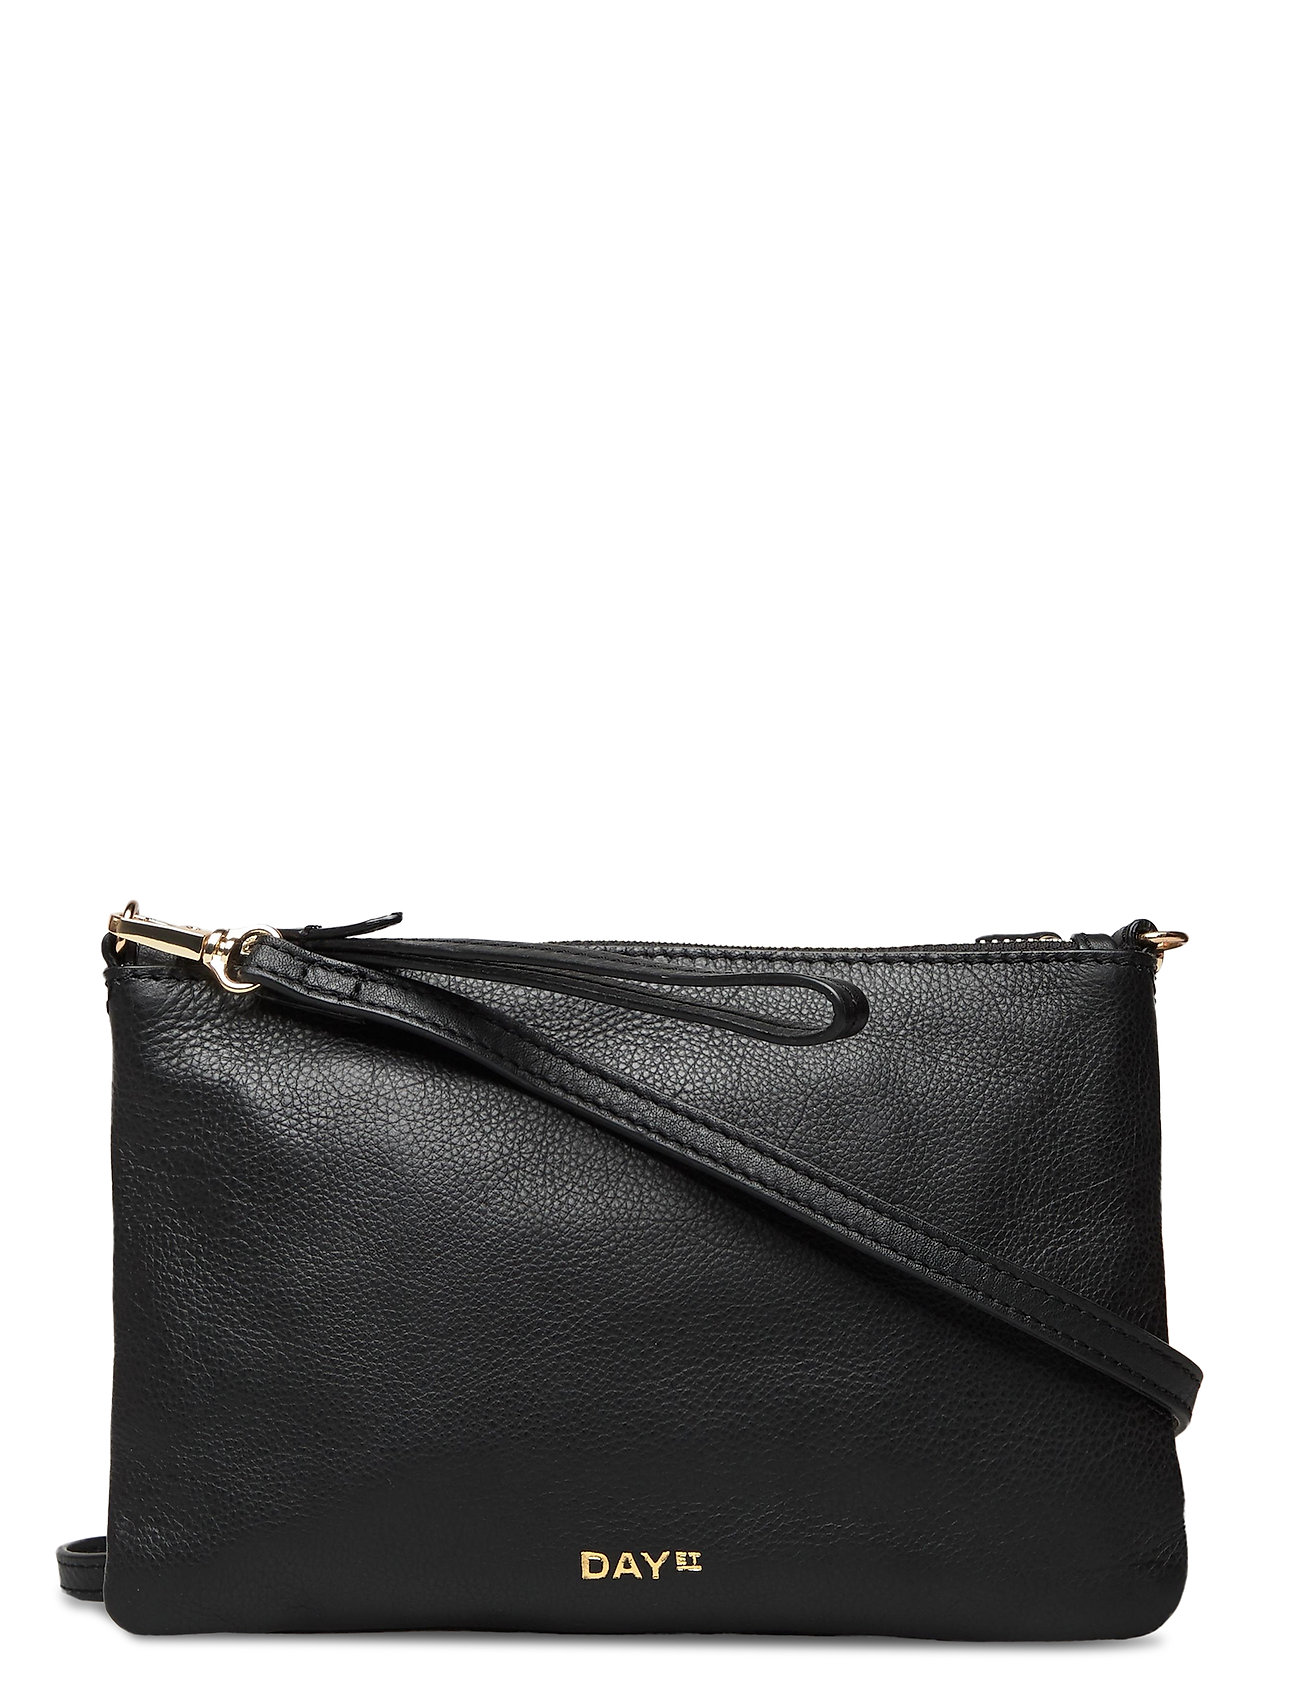 Image of Day Bern Cb Bags Small Shoulder Bags - Crossbody Bags Sort DAY Et (3447241235)